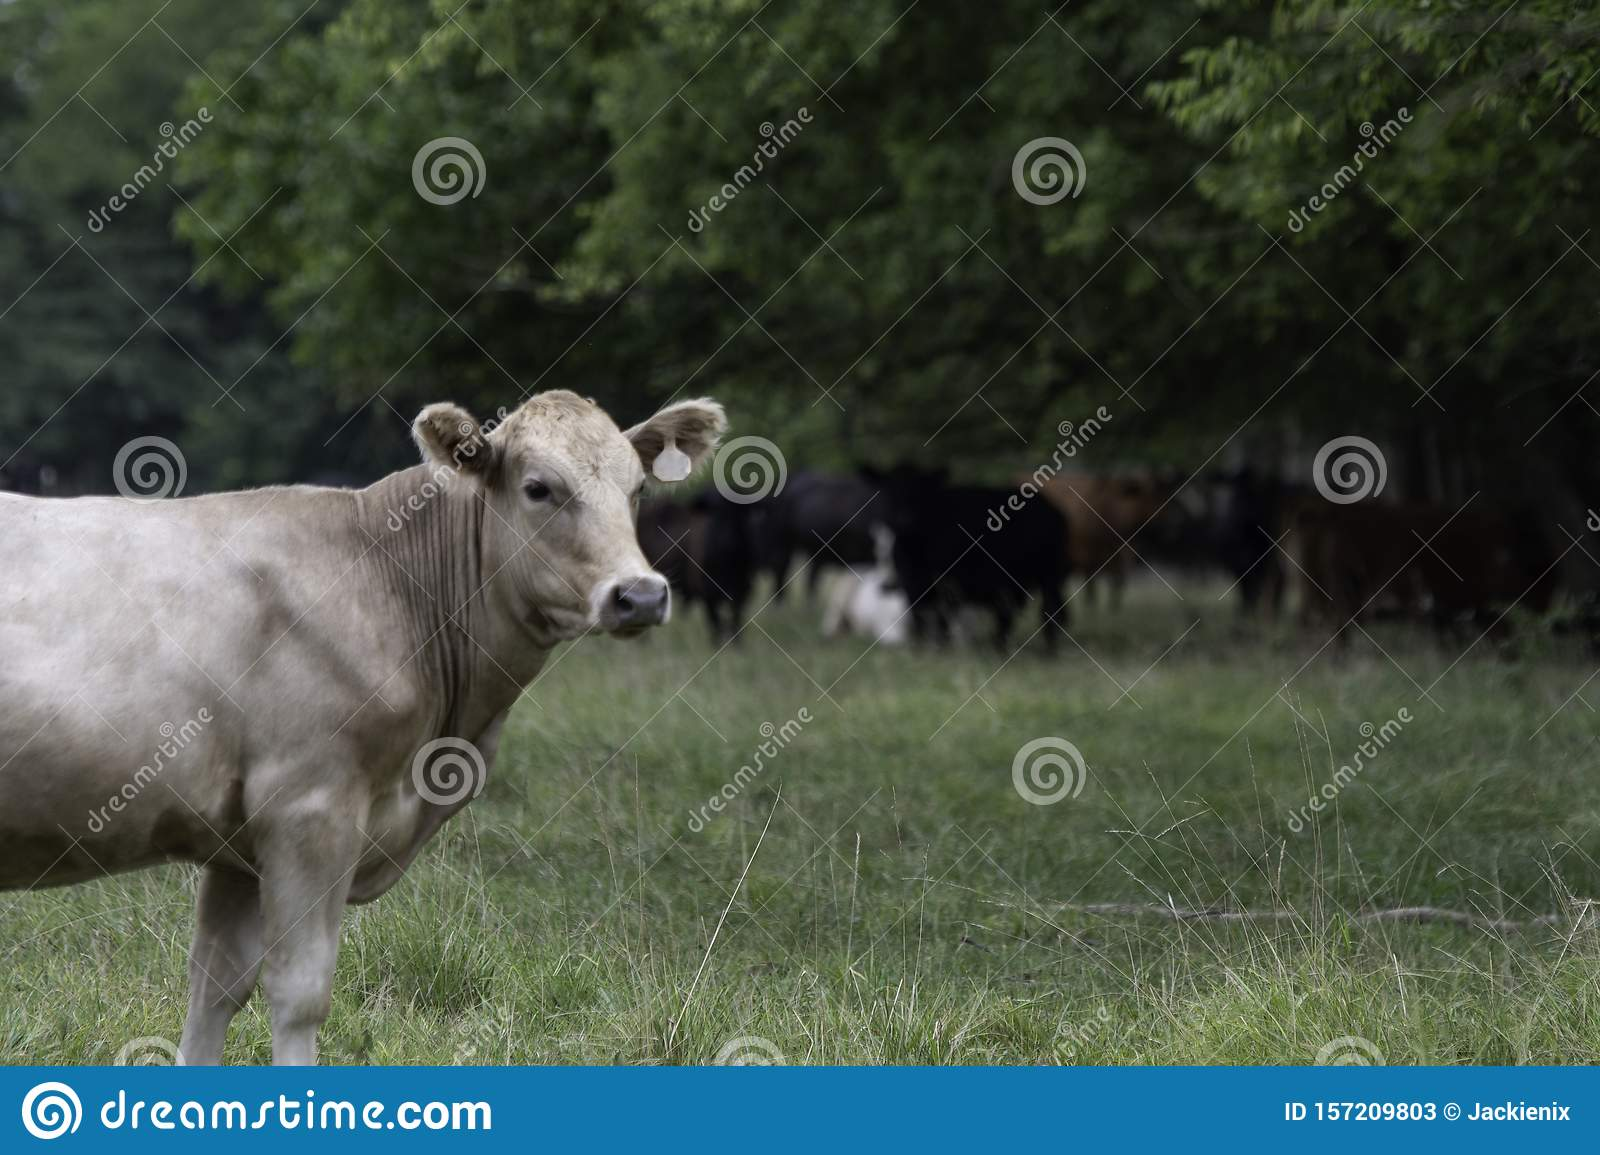 White crossbred heifer with herd out of focus in background